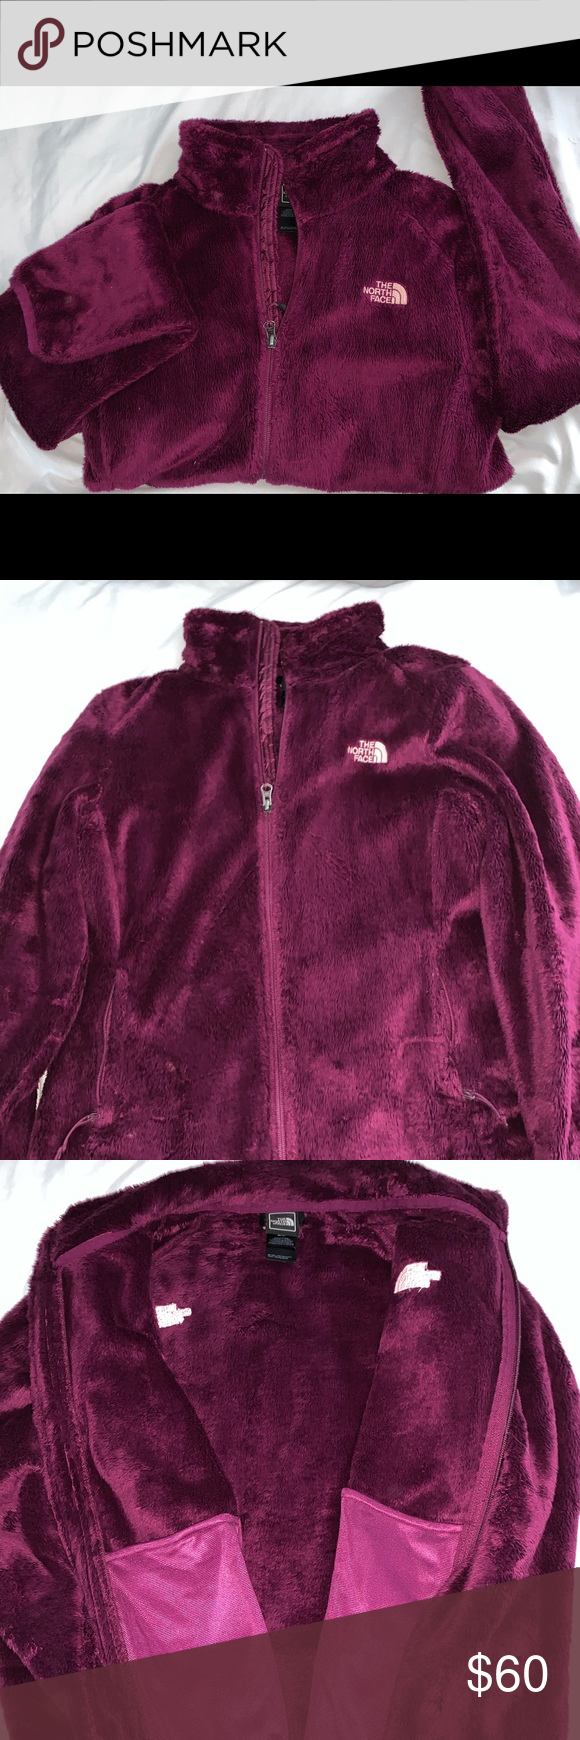 The North Face Women S Osito Jacket Purple North Face Women Jackets The North Face [ 1740 x 580 Pixel ]